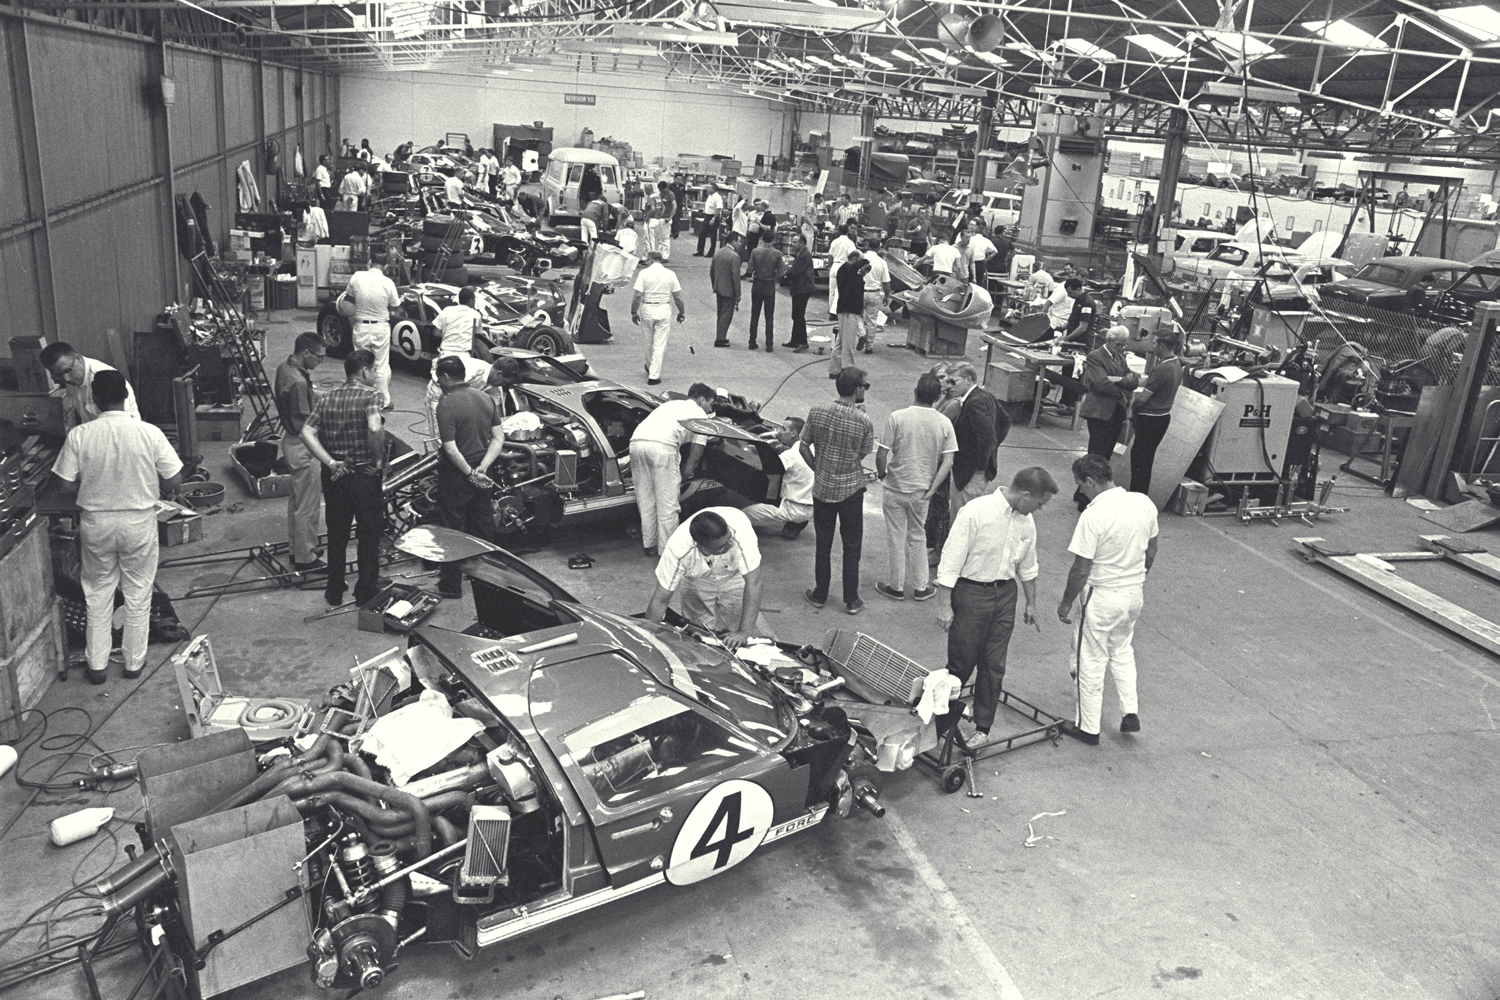 24 Hours of LeMans, LeMans, France, 1966. Ford Racing garage.